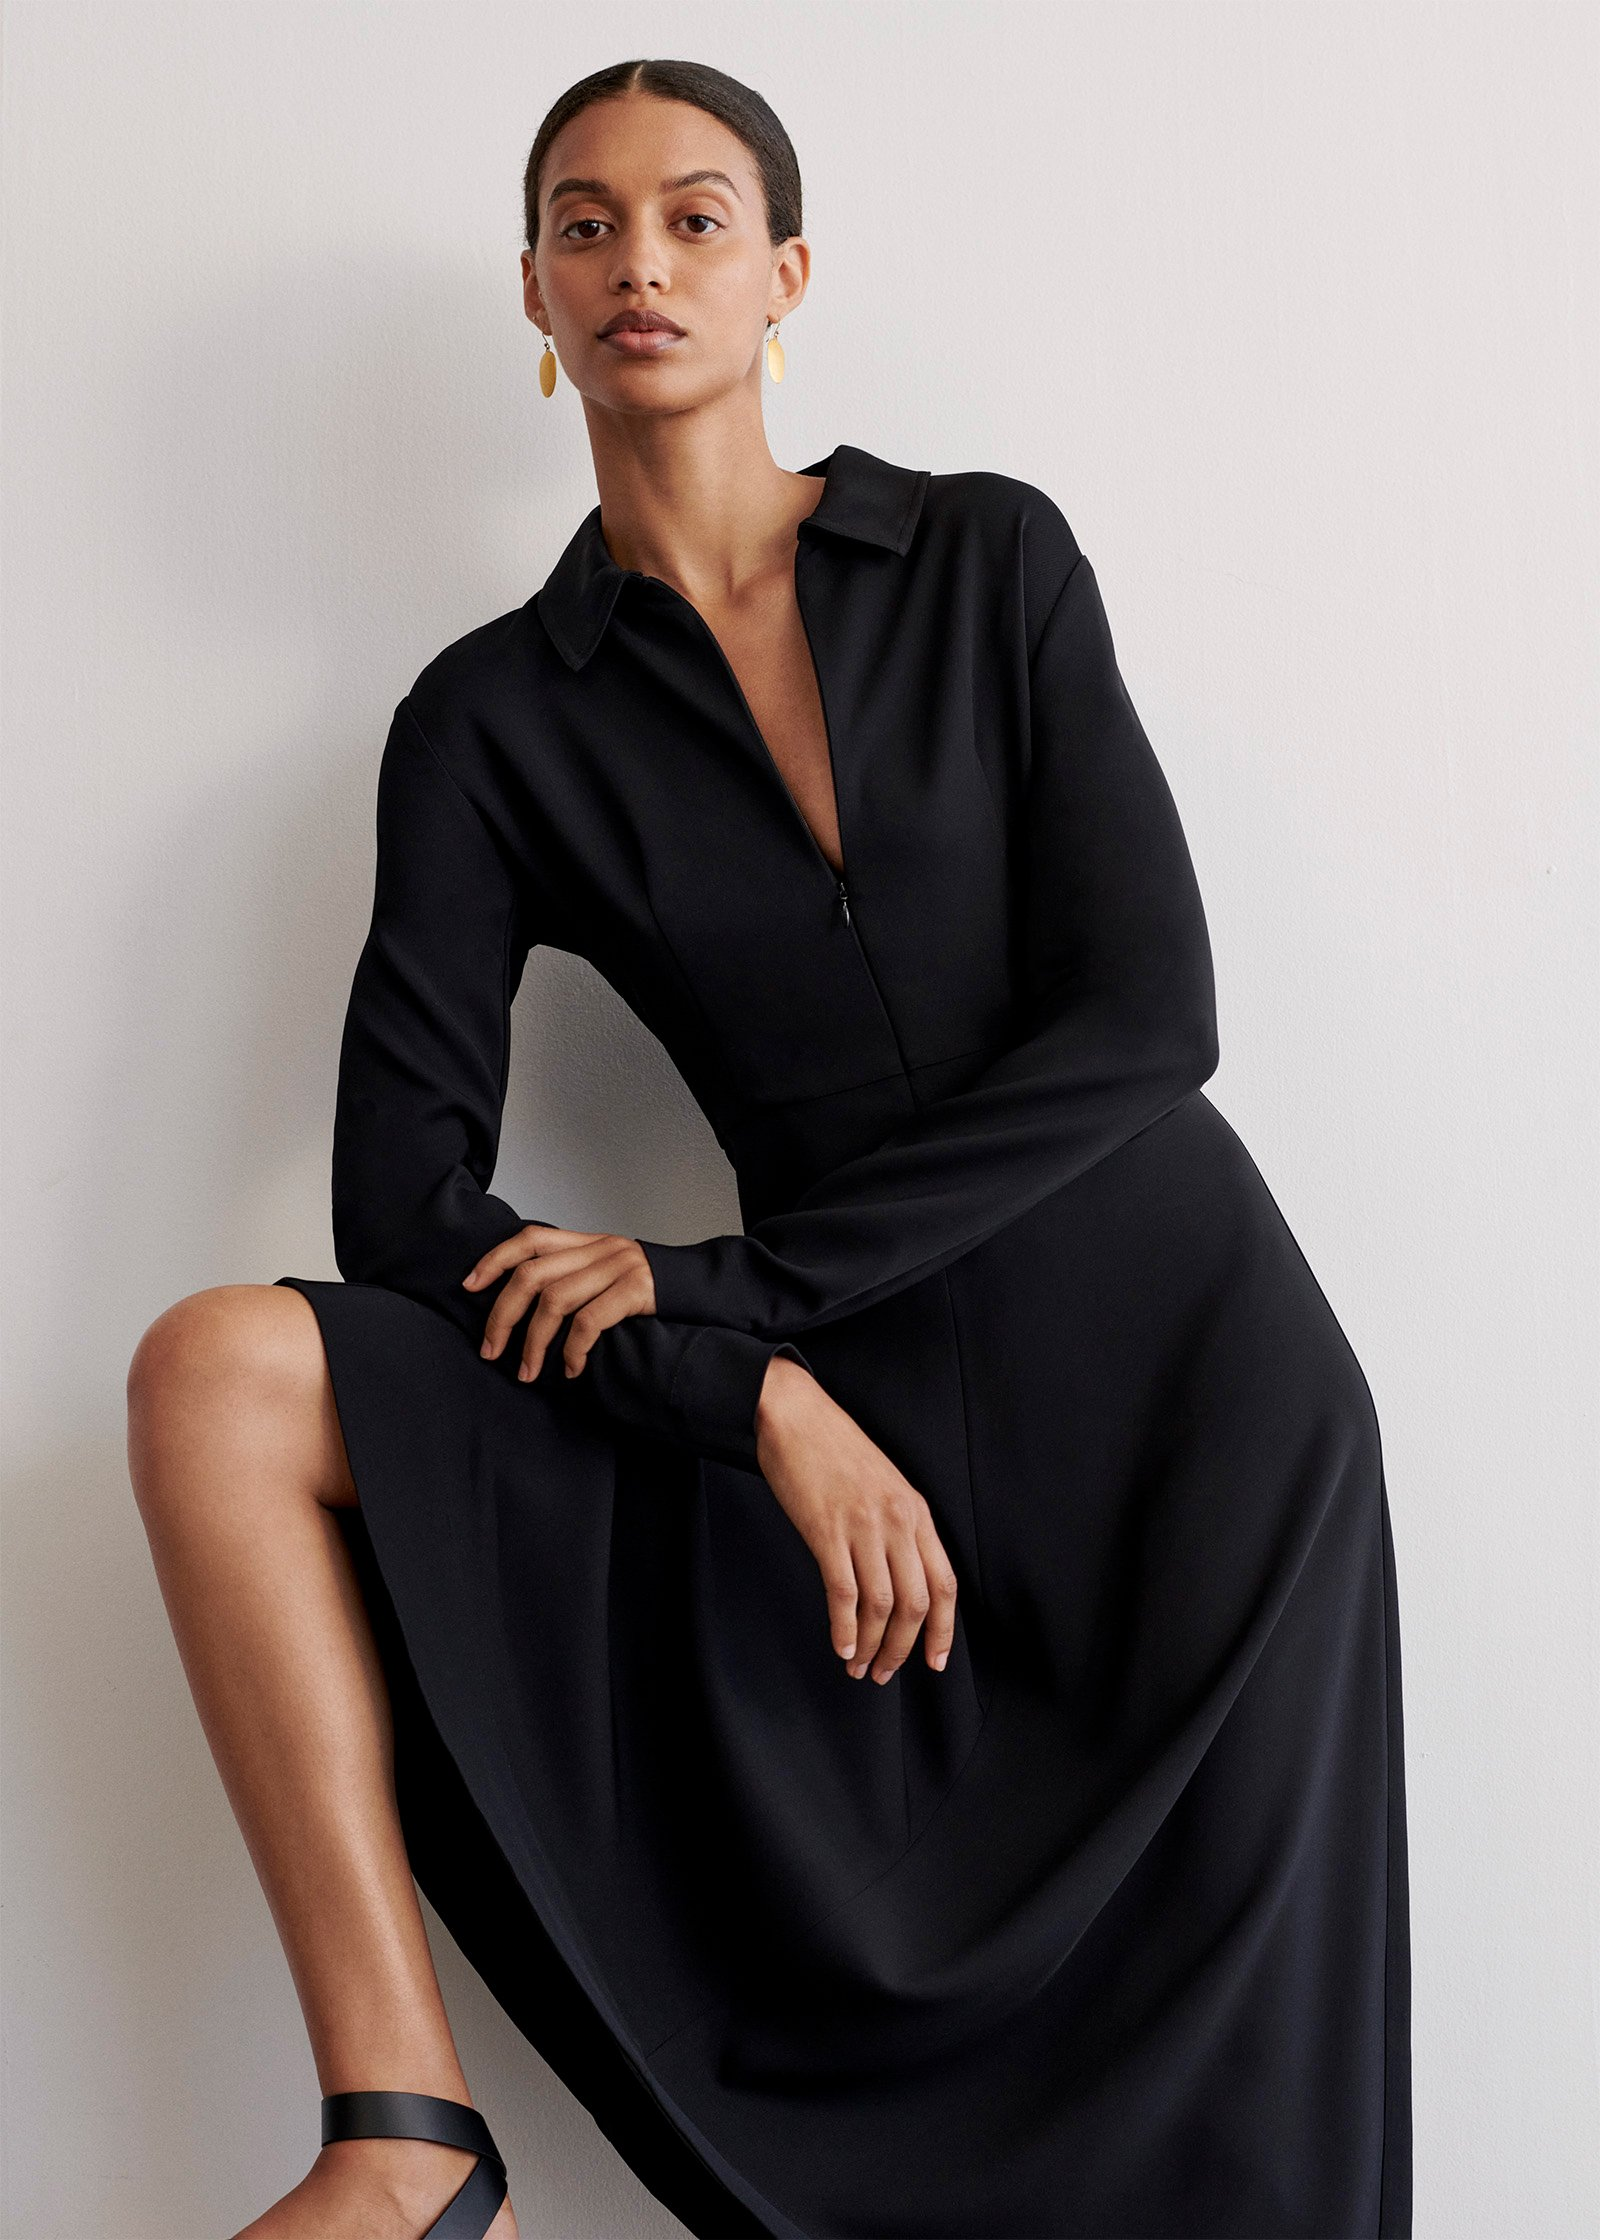 Long Sleeve Shirt Dress In Stretch Viscose - Black - by Zoe Gherter for Co